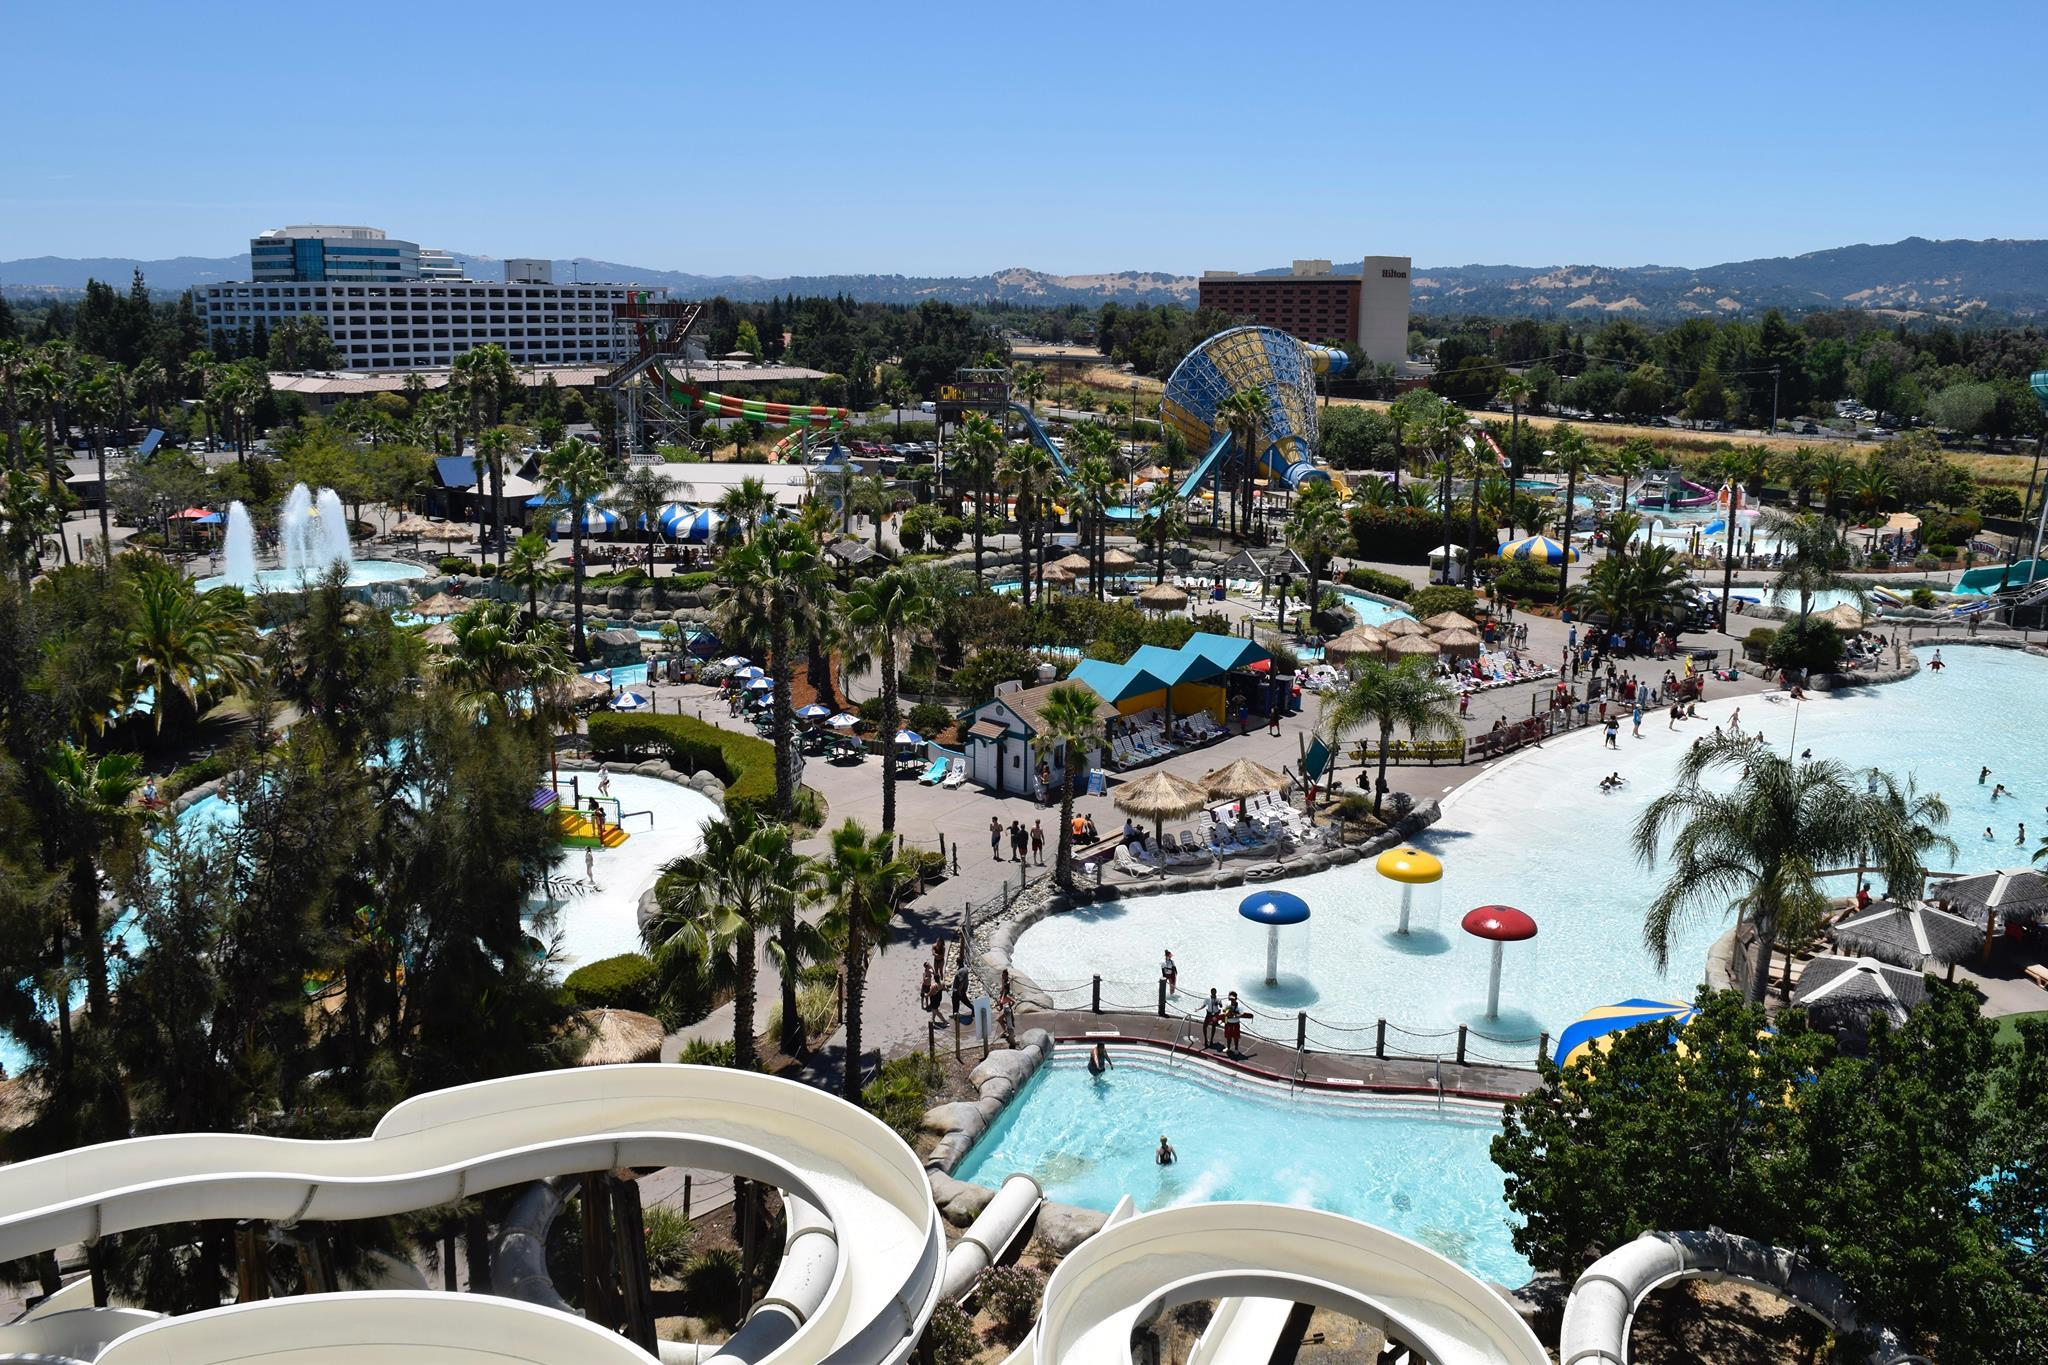 Six Flags Welcomes Back Waterworld California as 20th Property (Photo: Business Wire)